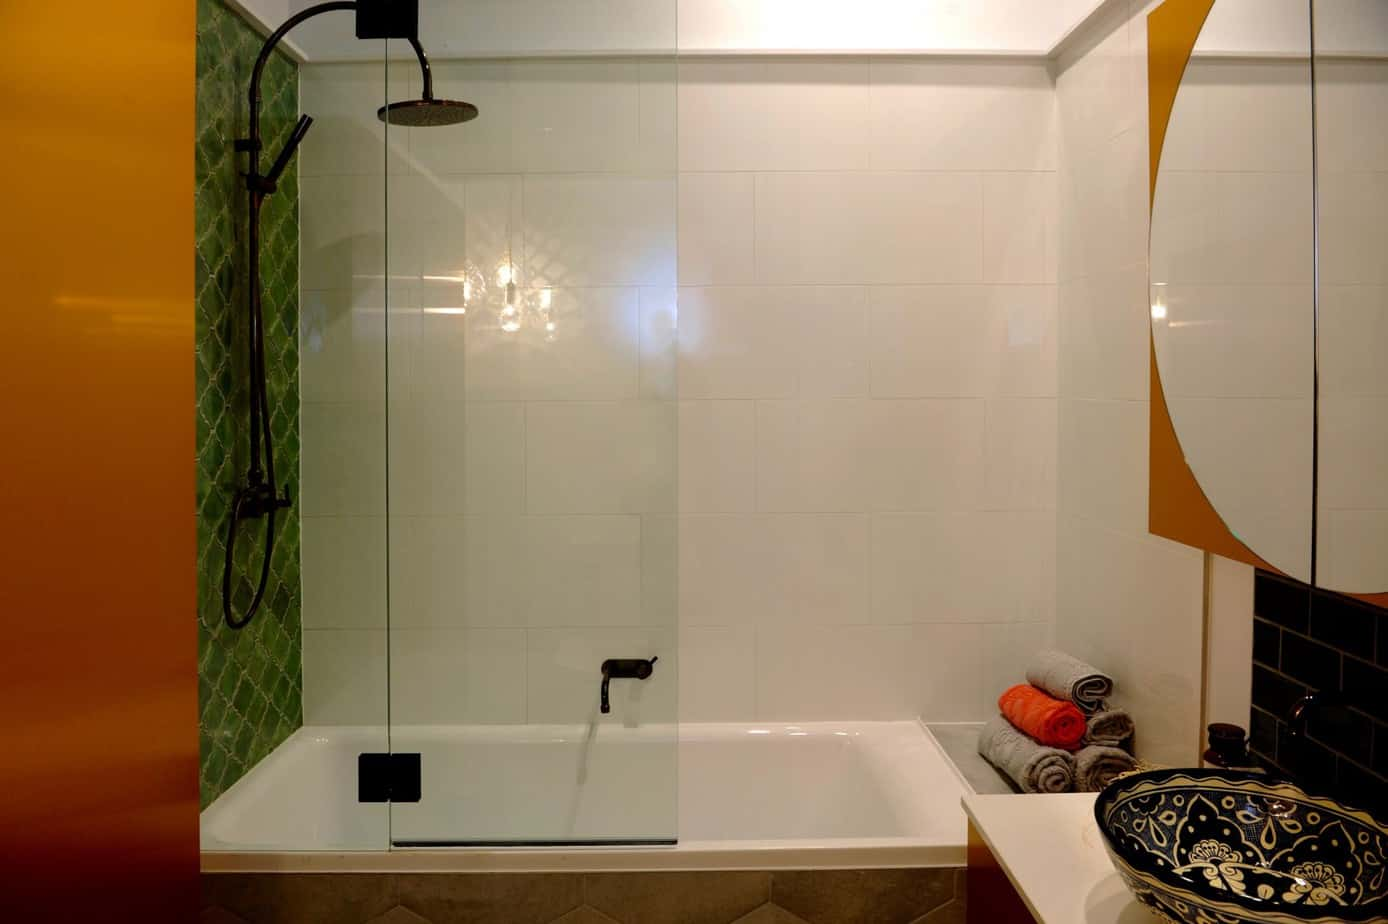 No Bathroom Windows? No Problem, with This Great Solution